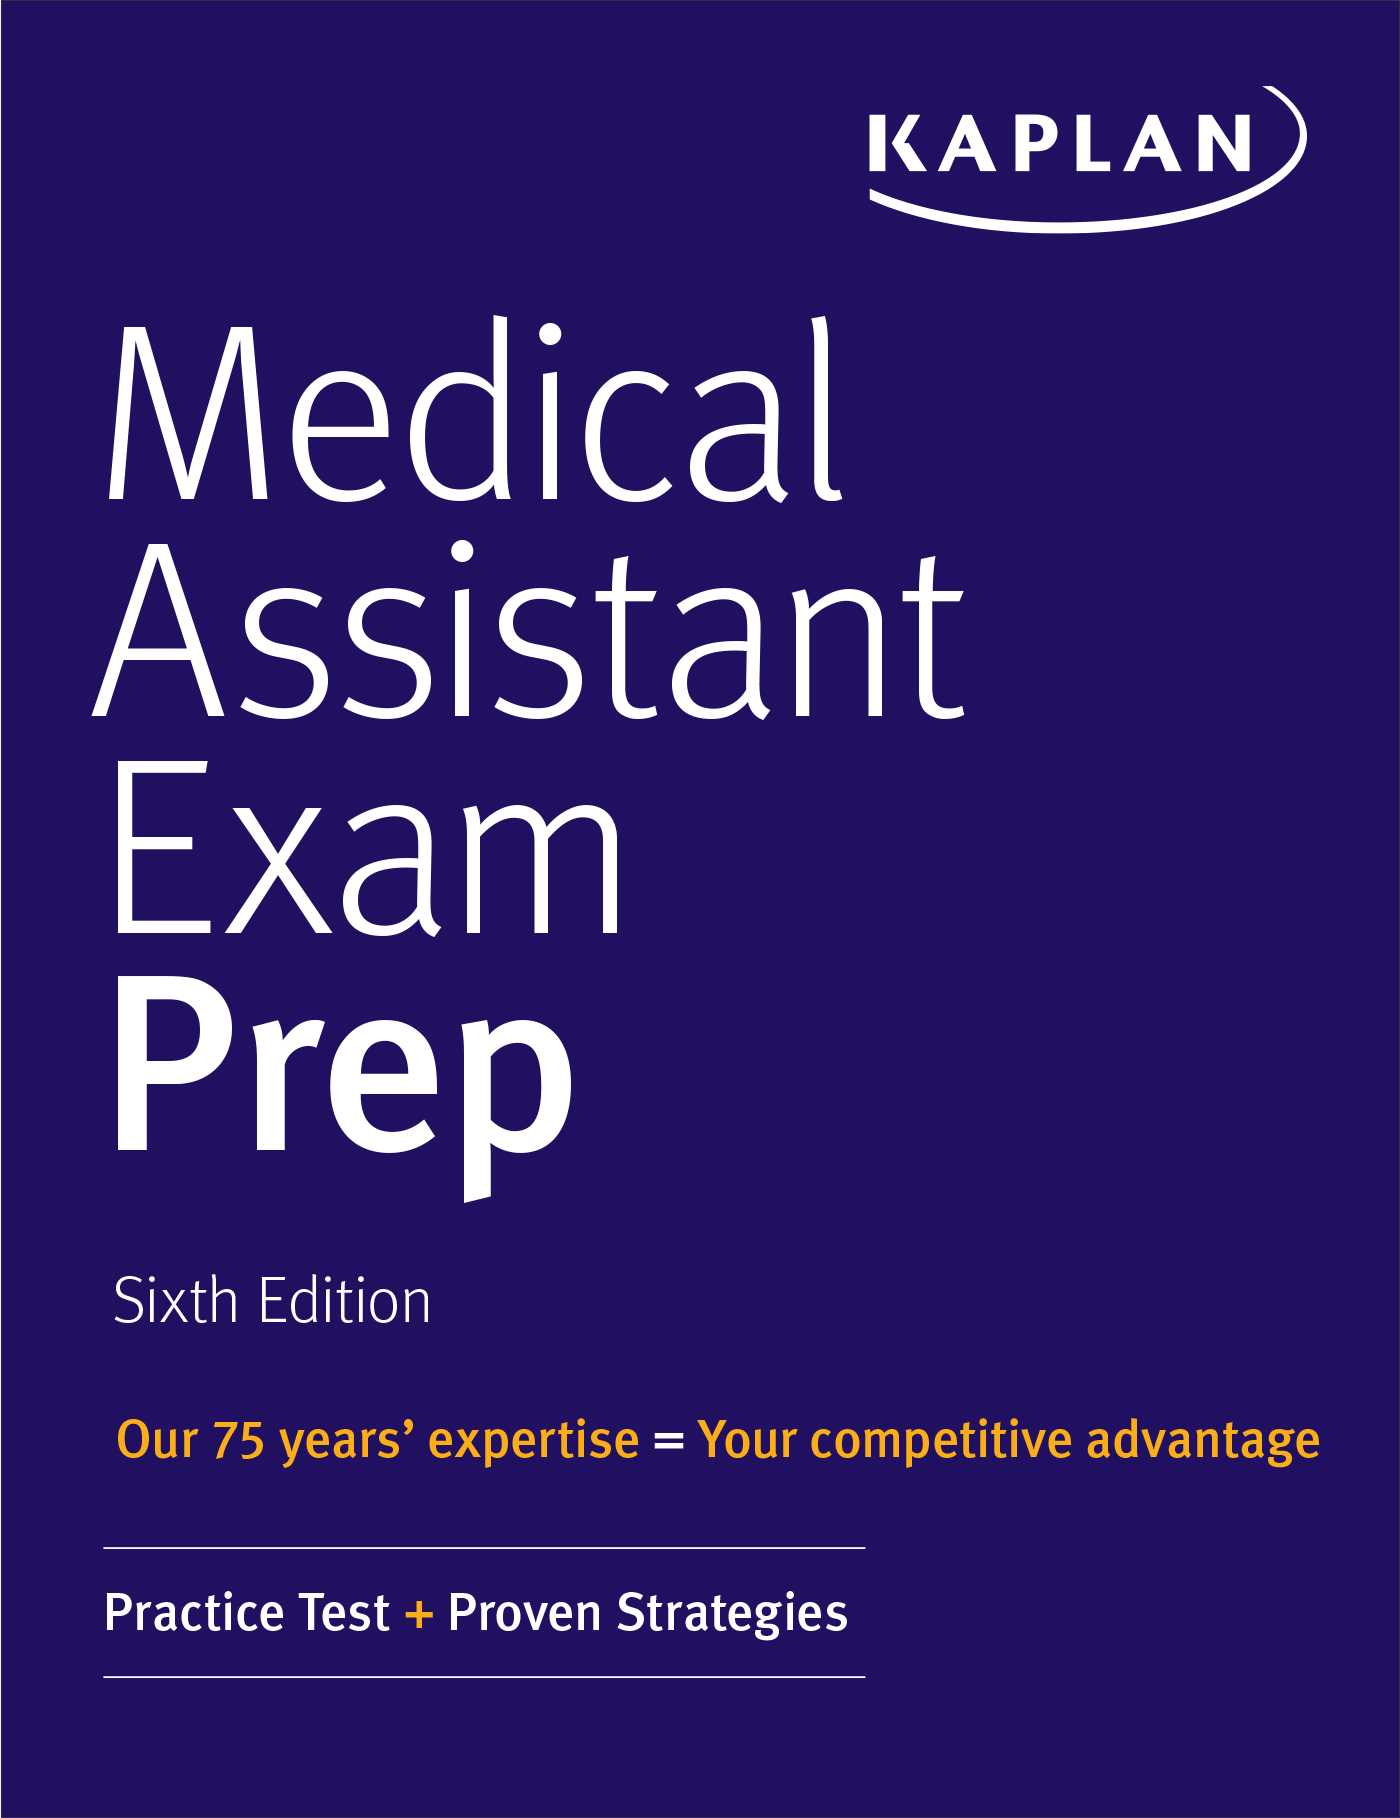 Medical assistant exam prep ebook by kaplan nursing official medical assistant exam prep 9781506223506 hr fandeluxe Gallery